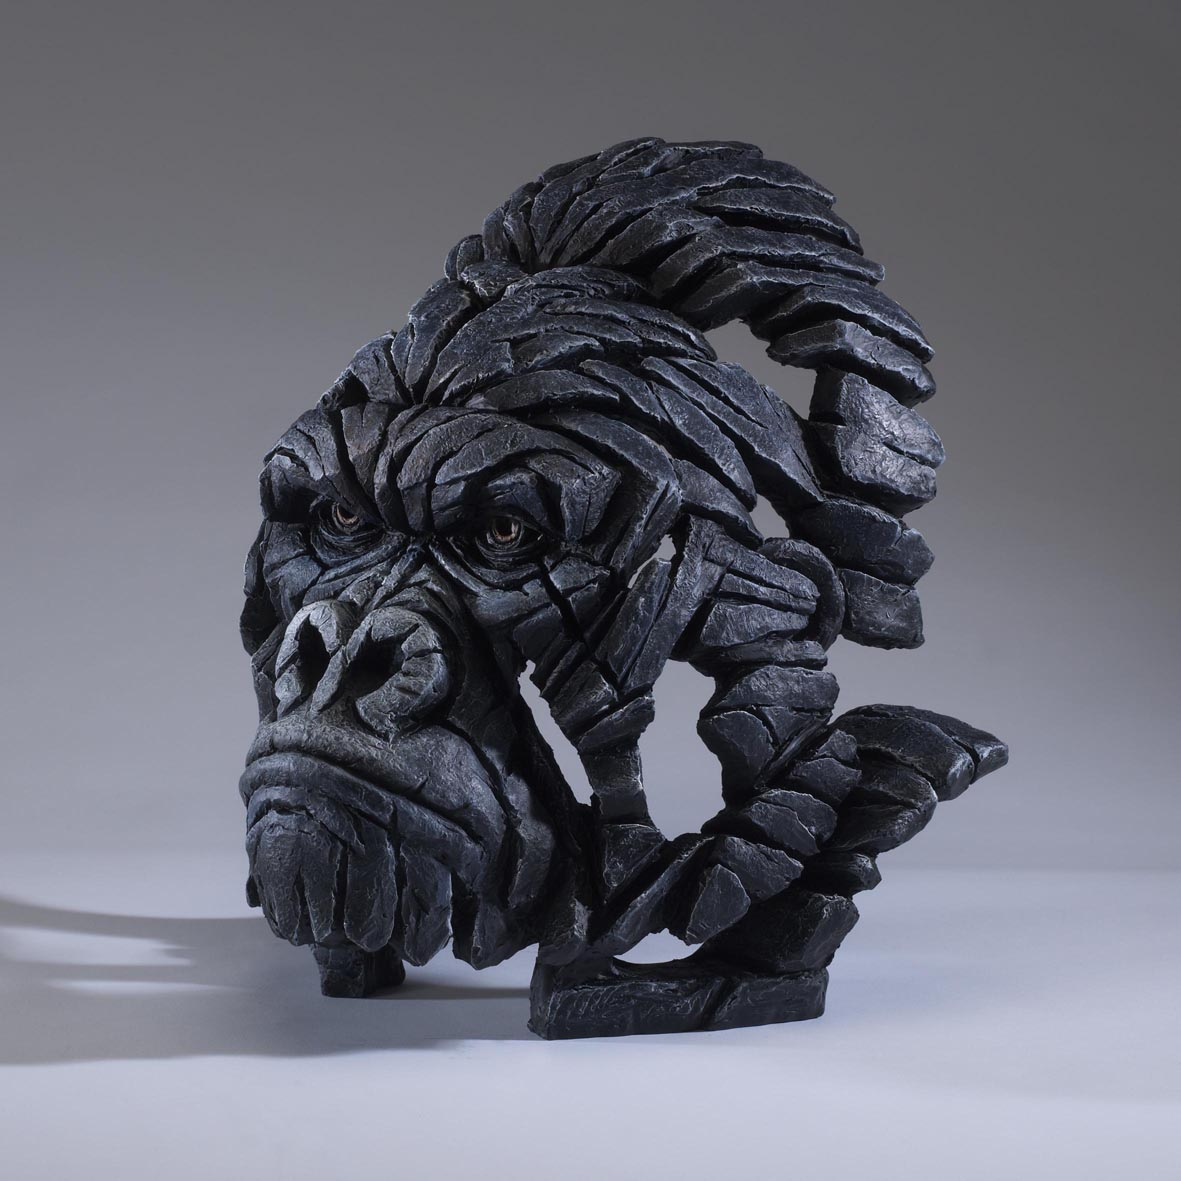 Gorilla bust by matt buckley of edge sculptures rennies